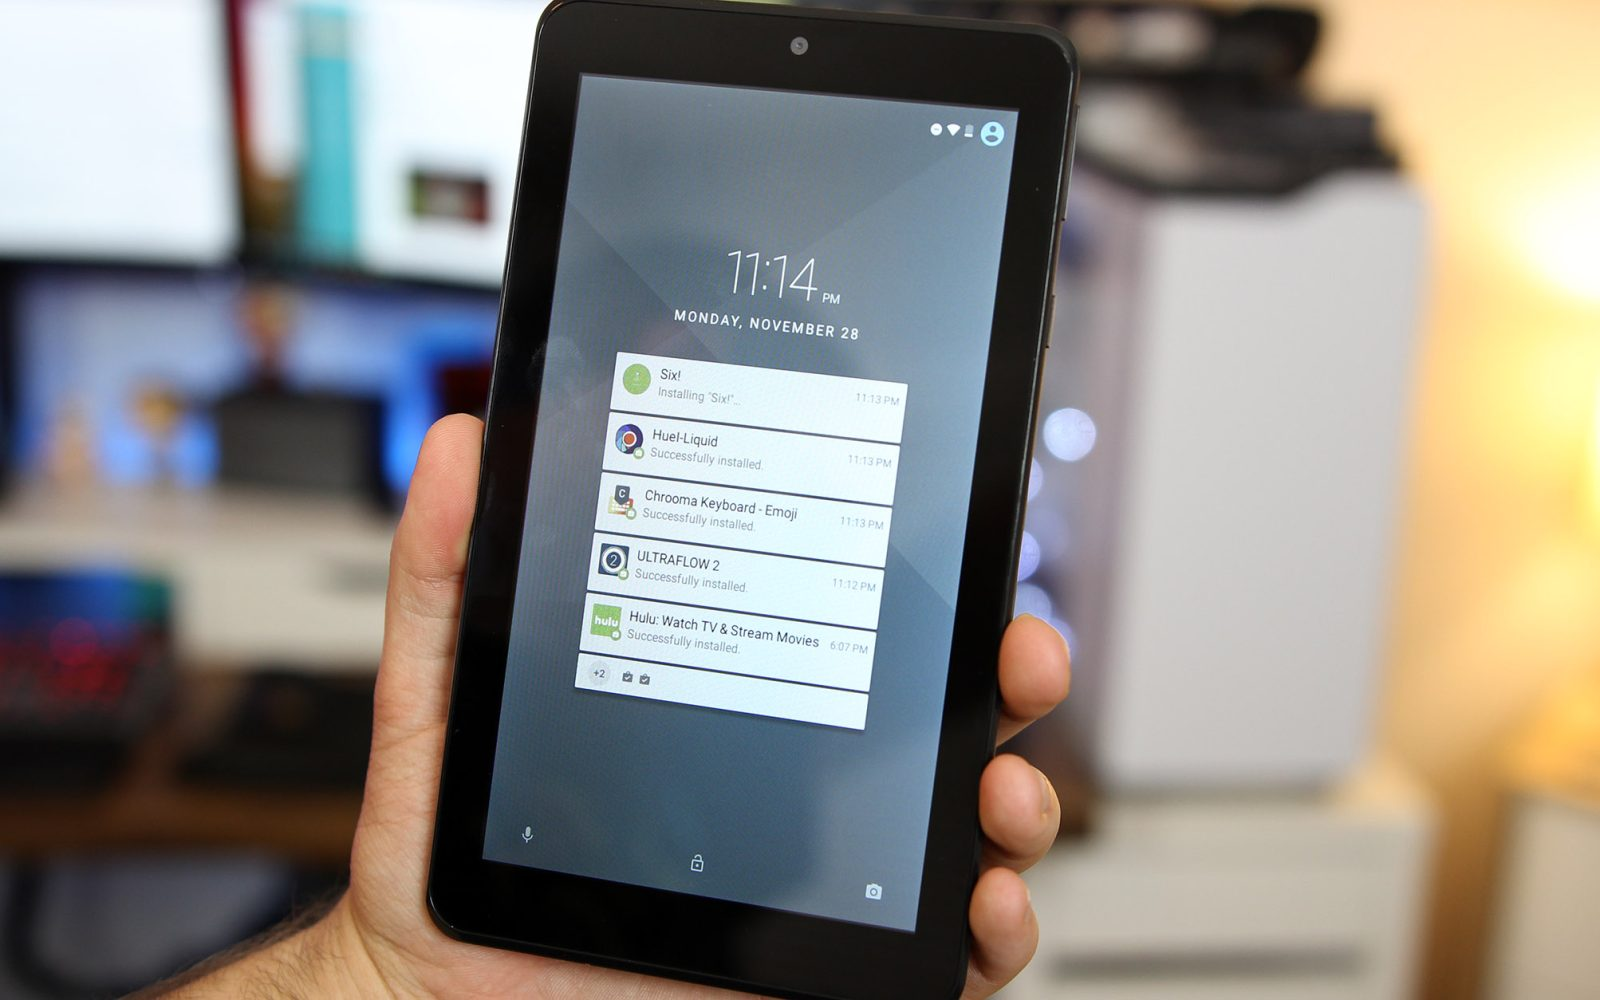 The $50 NOOK tablet features Android's adoptable storage